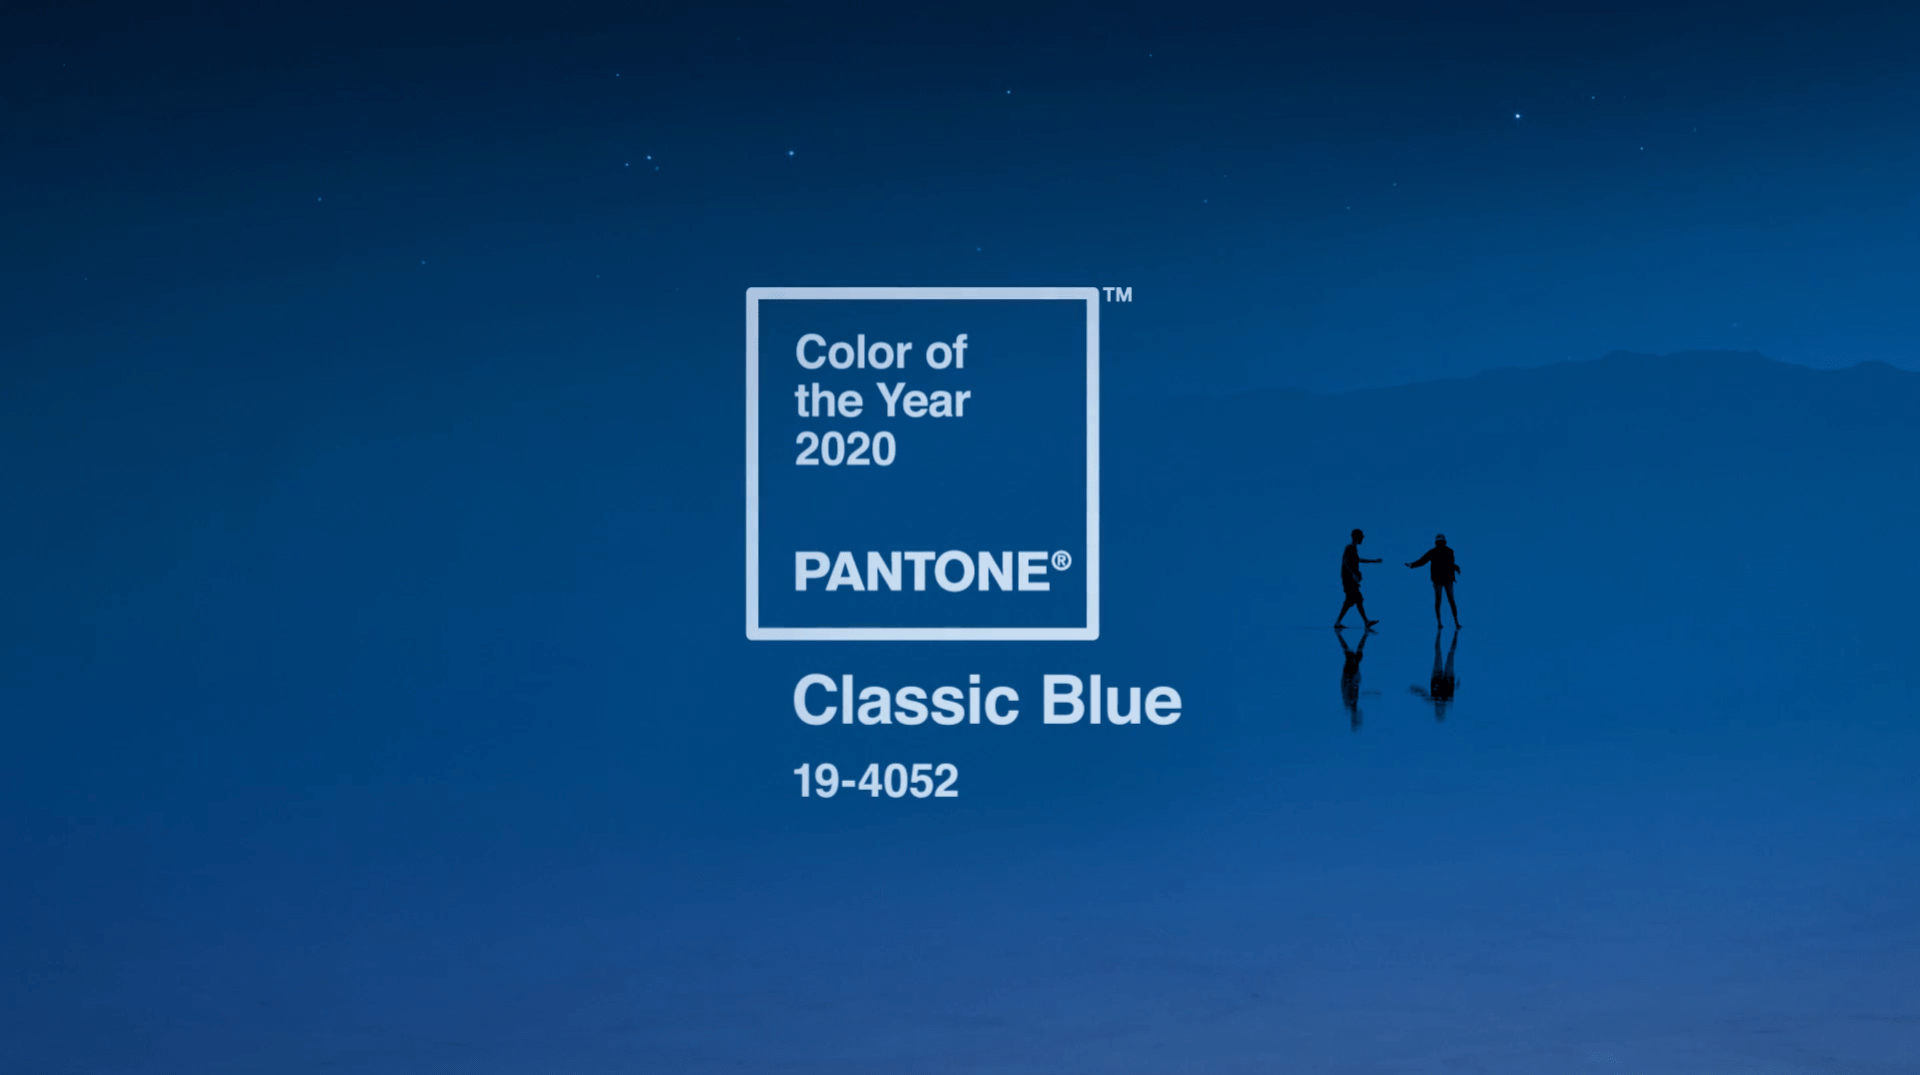 Blue Pantone Color of the Year 2020